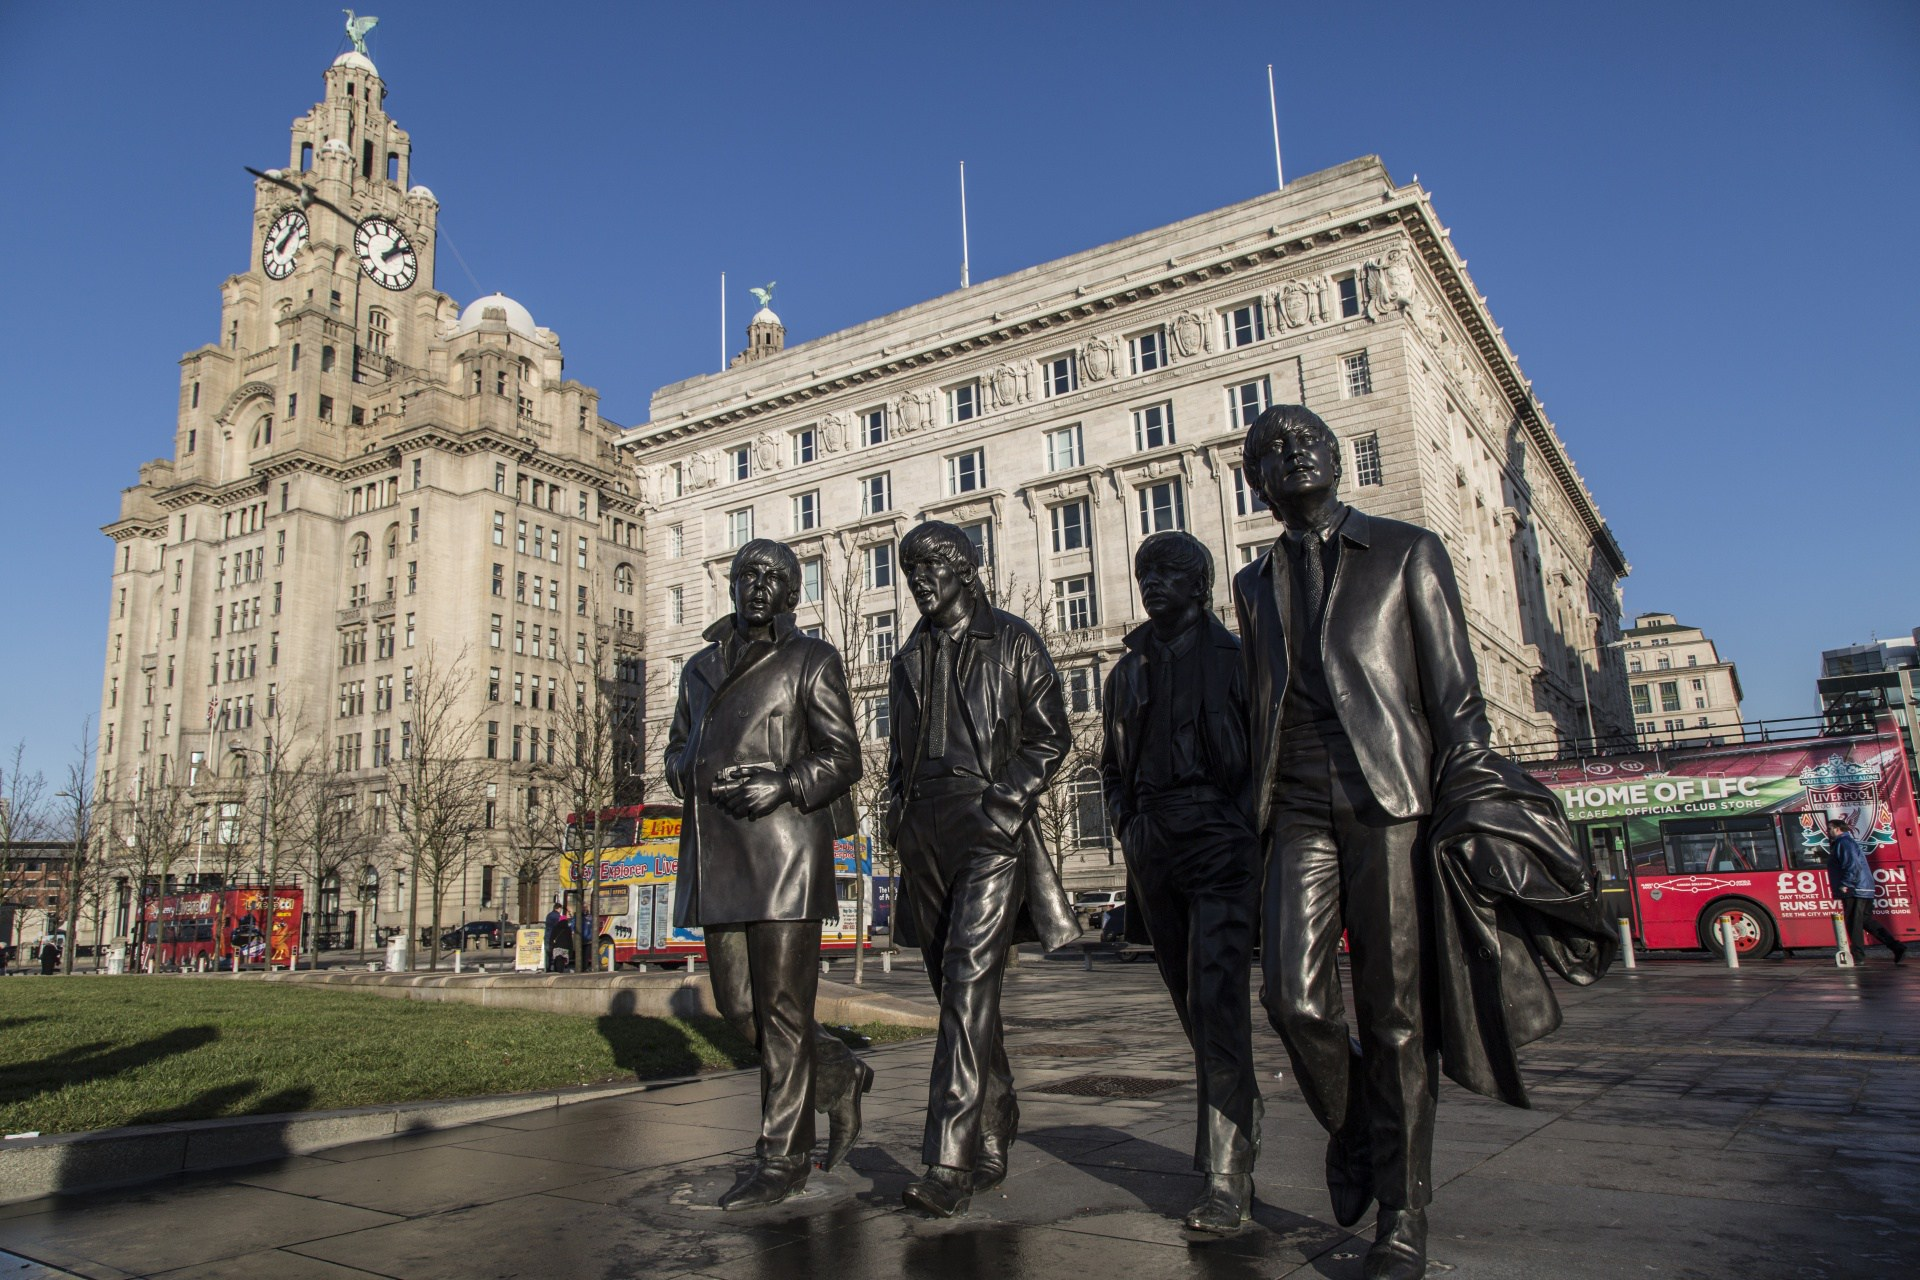 Liverpool-Main-Picture.jpg